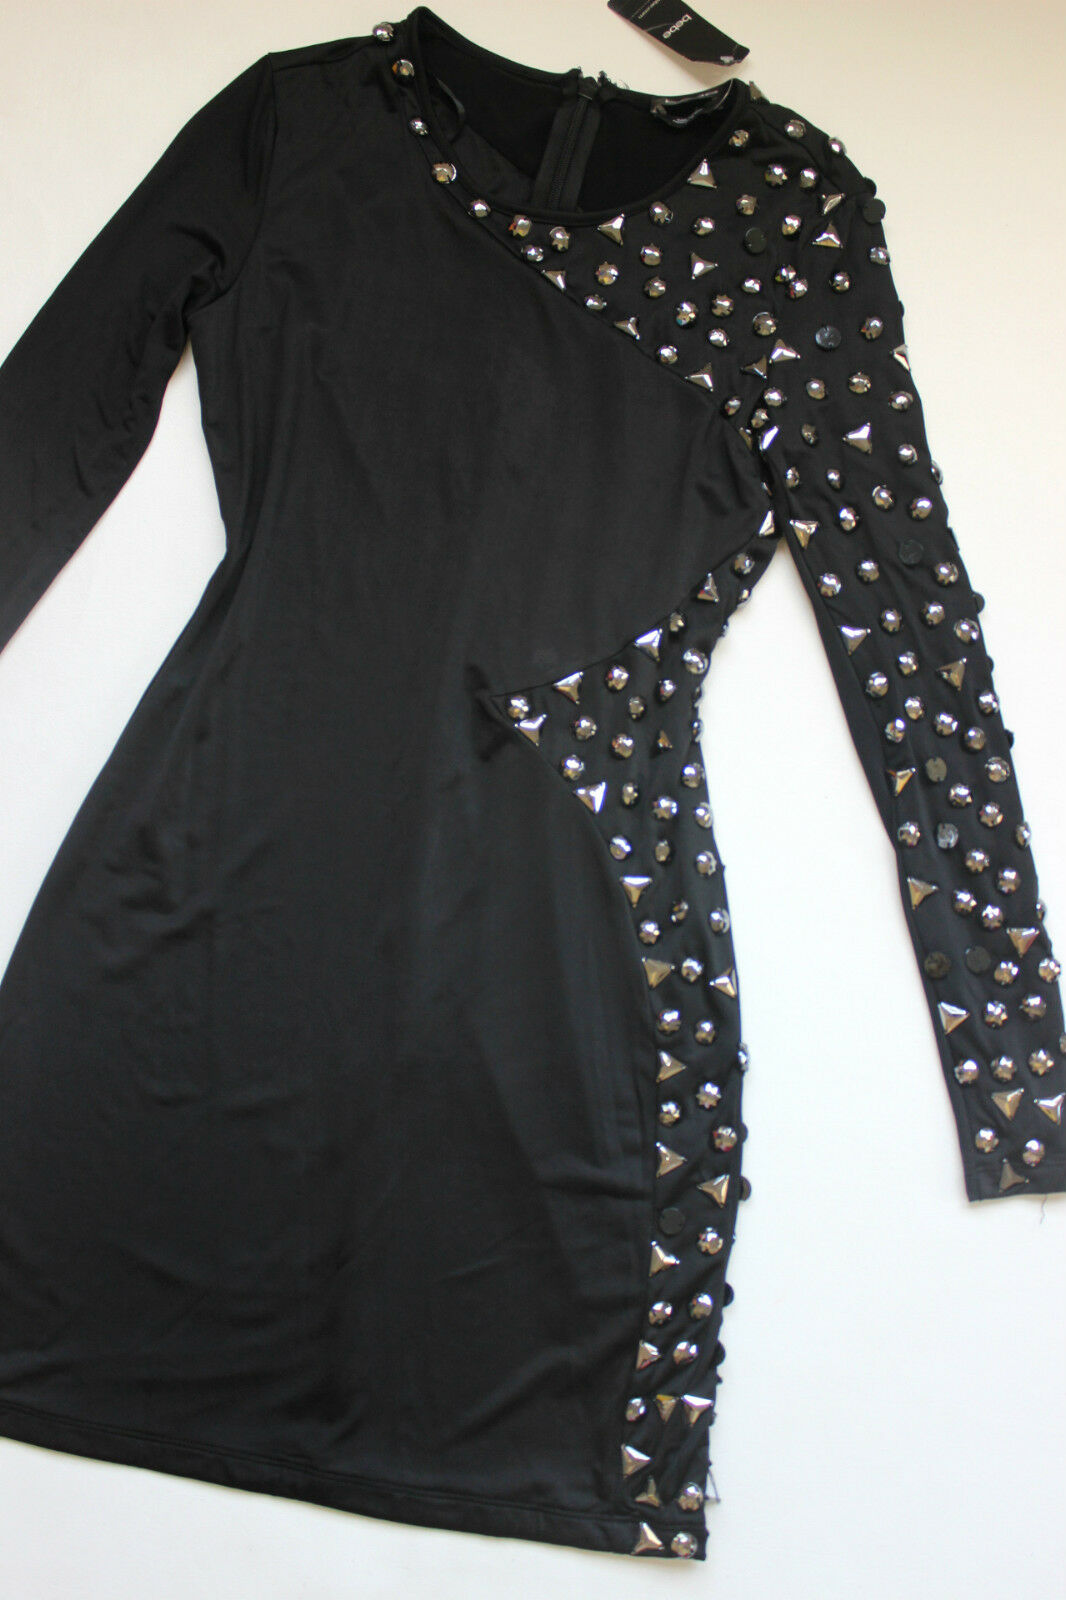 NWT bebe schwarz long sleeve stud embellished party top bodycon dress S small 4